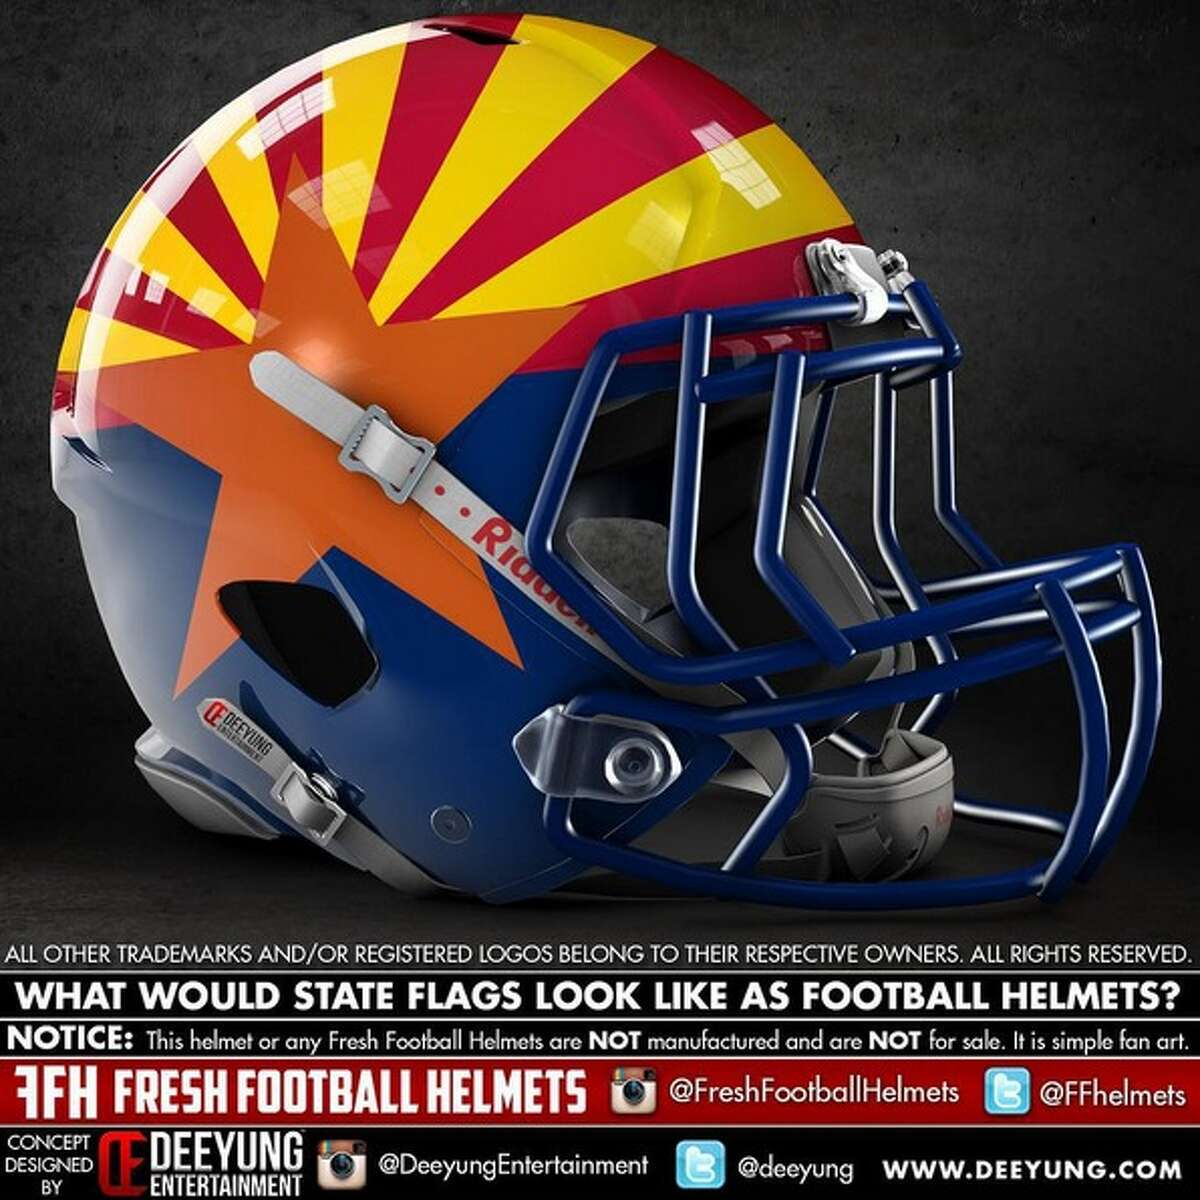 Arizona state flag concept football helmet designed by graphic artist Dylan Young of Deeyung Entertainment.